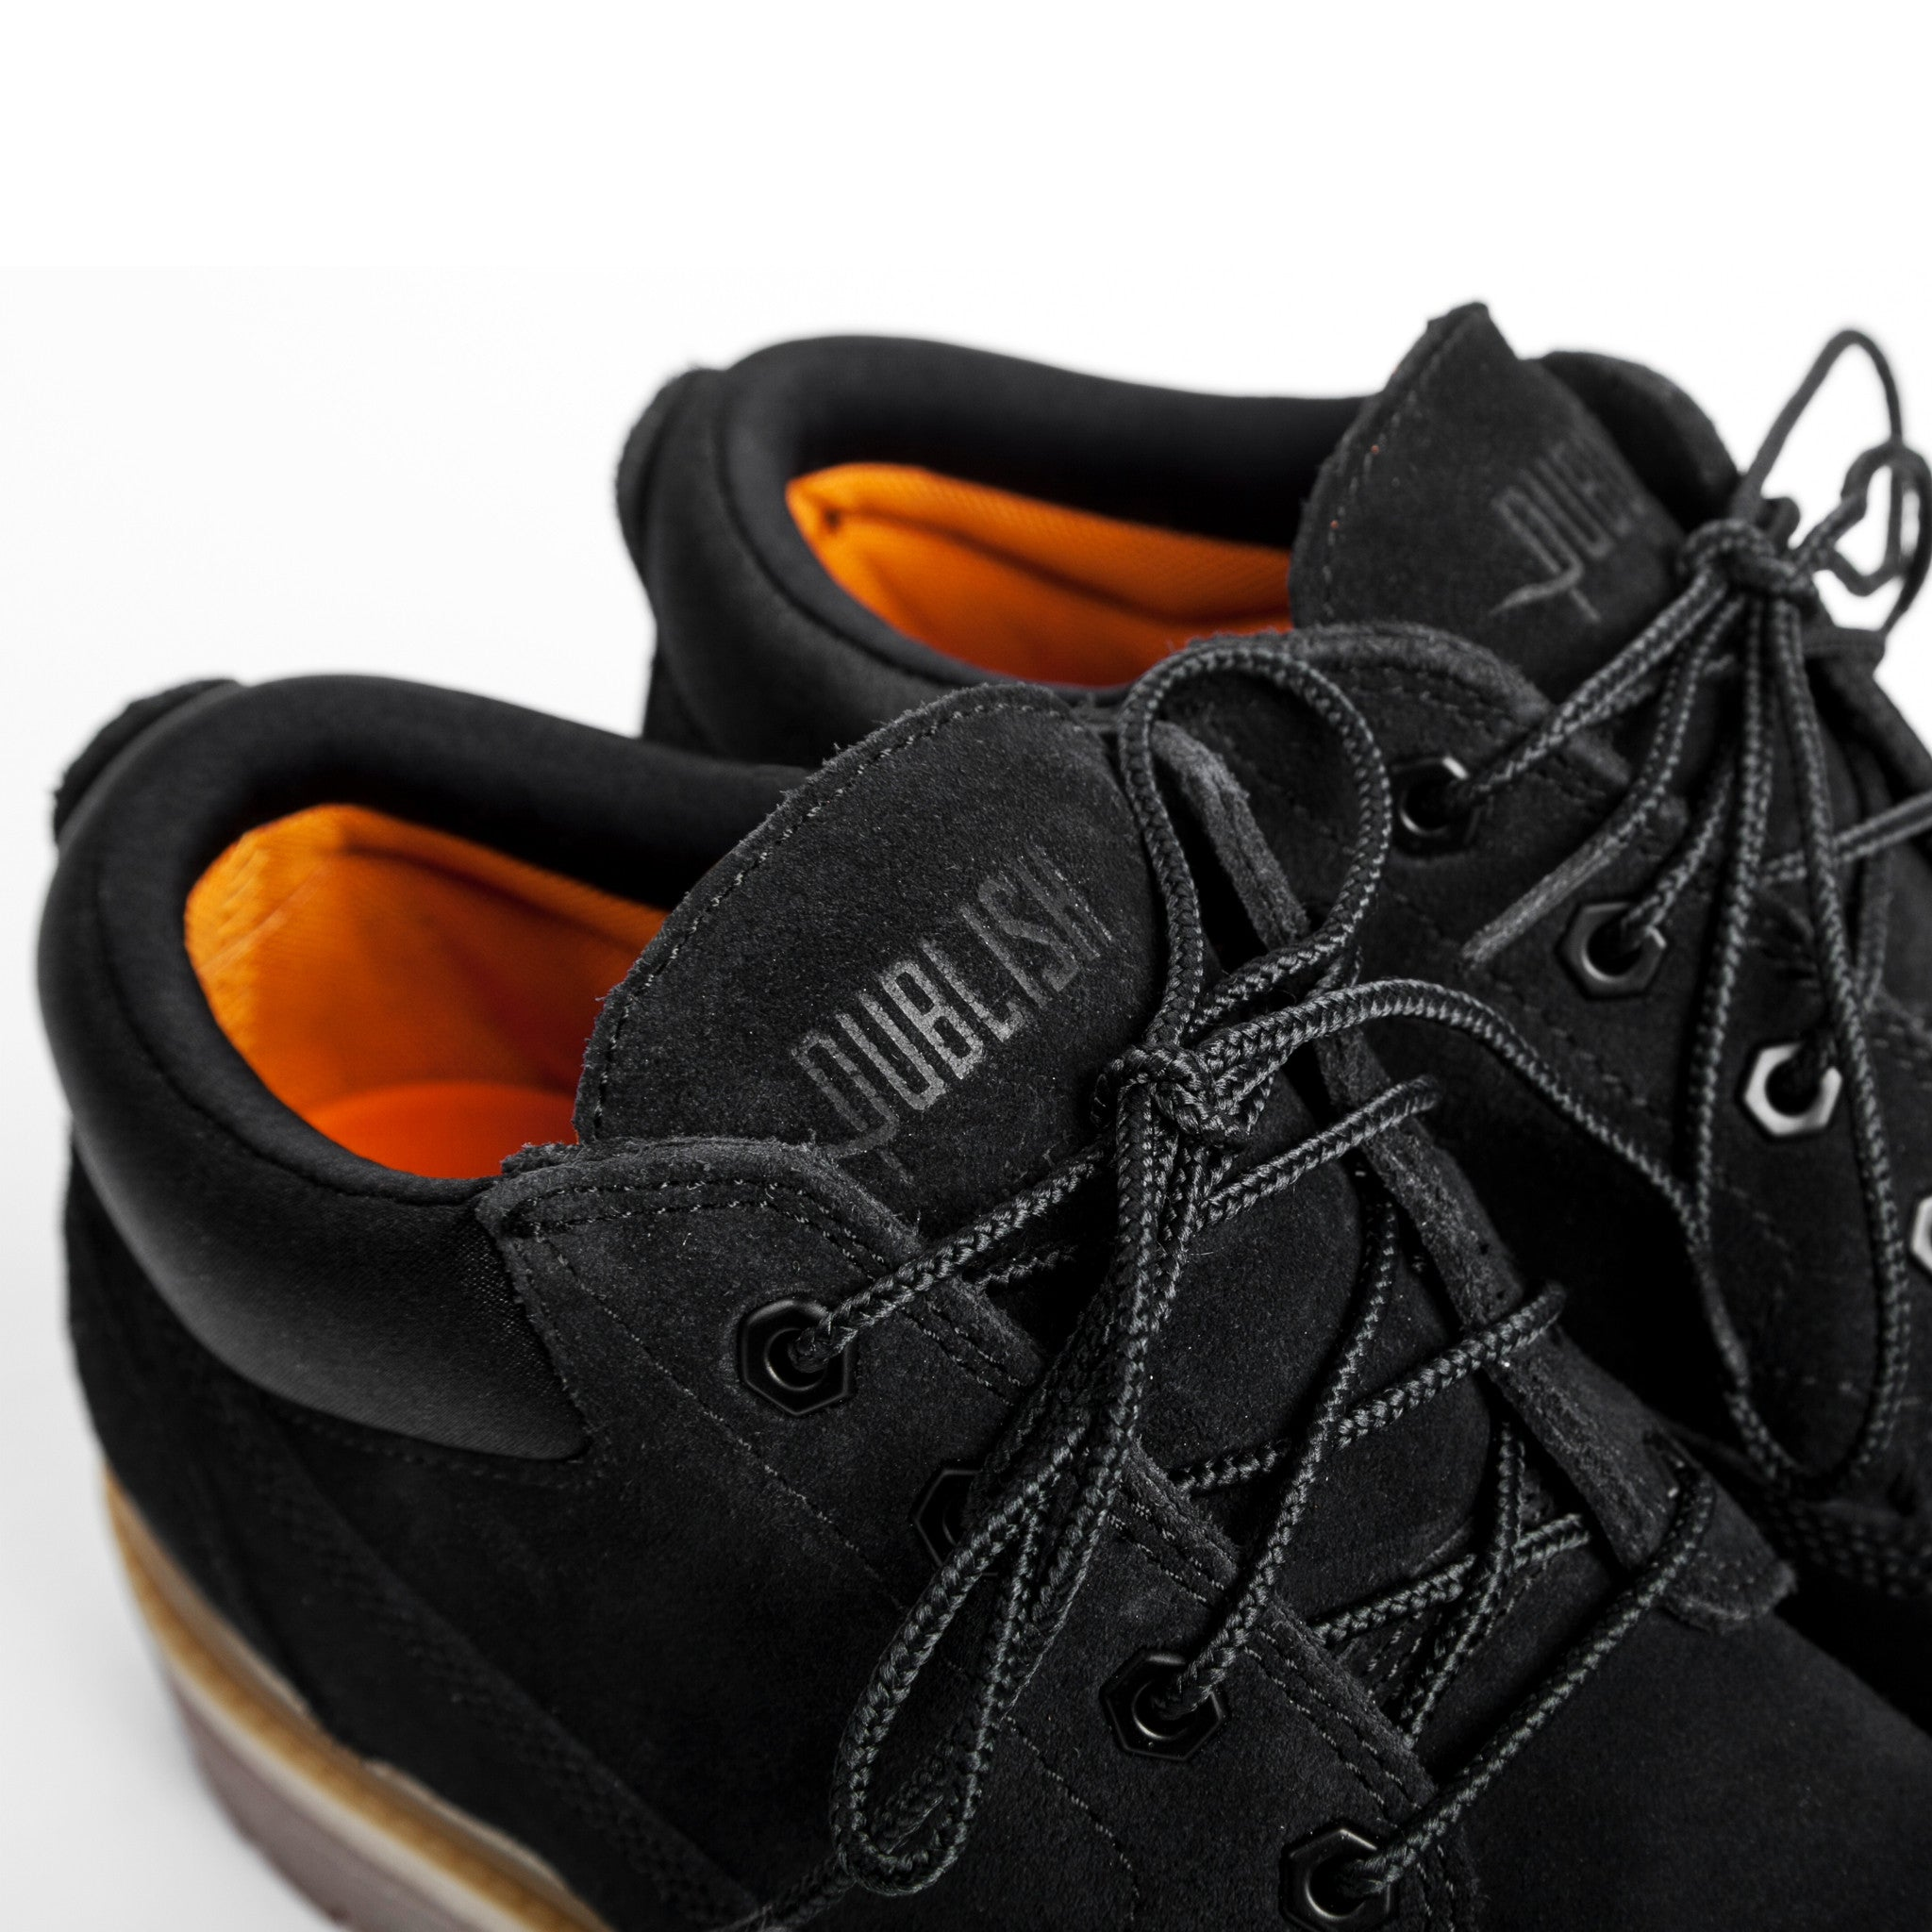 Timberland Classic Oxford - Black Suede